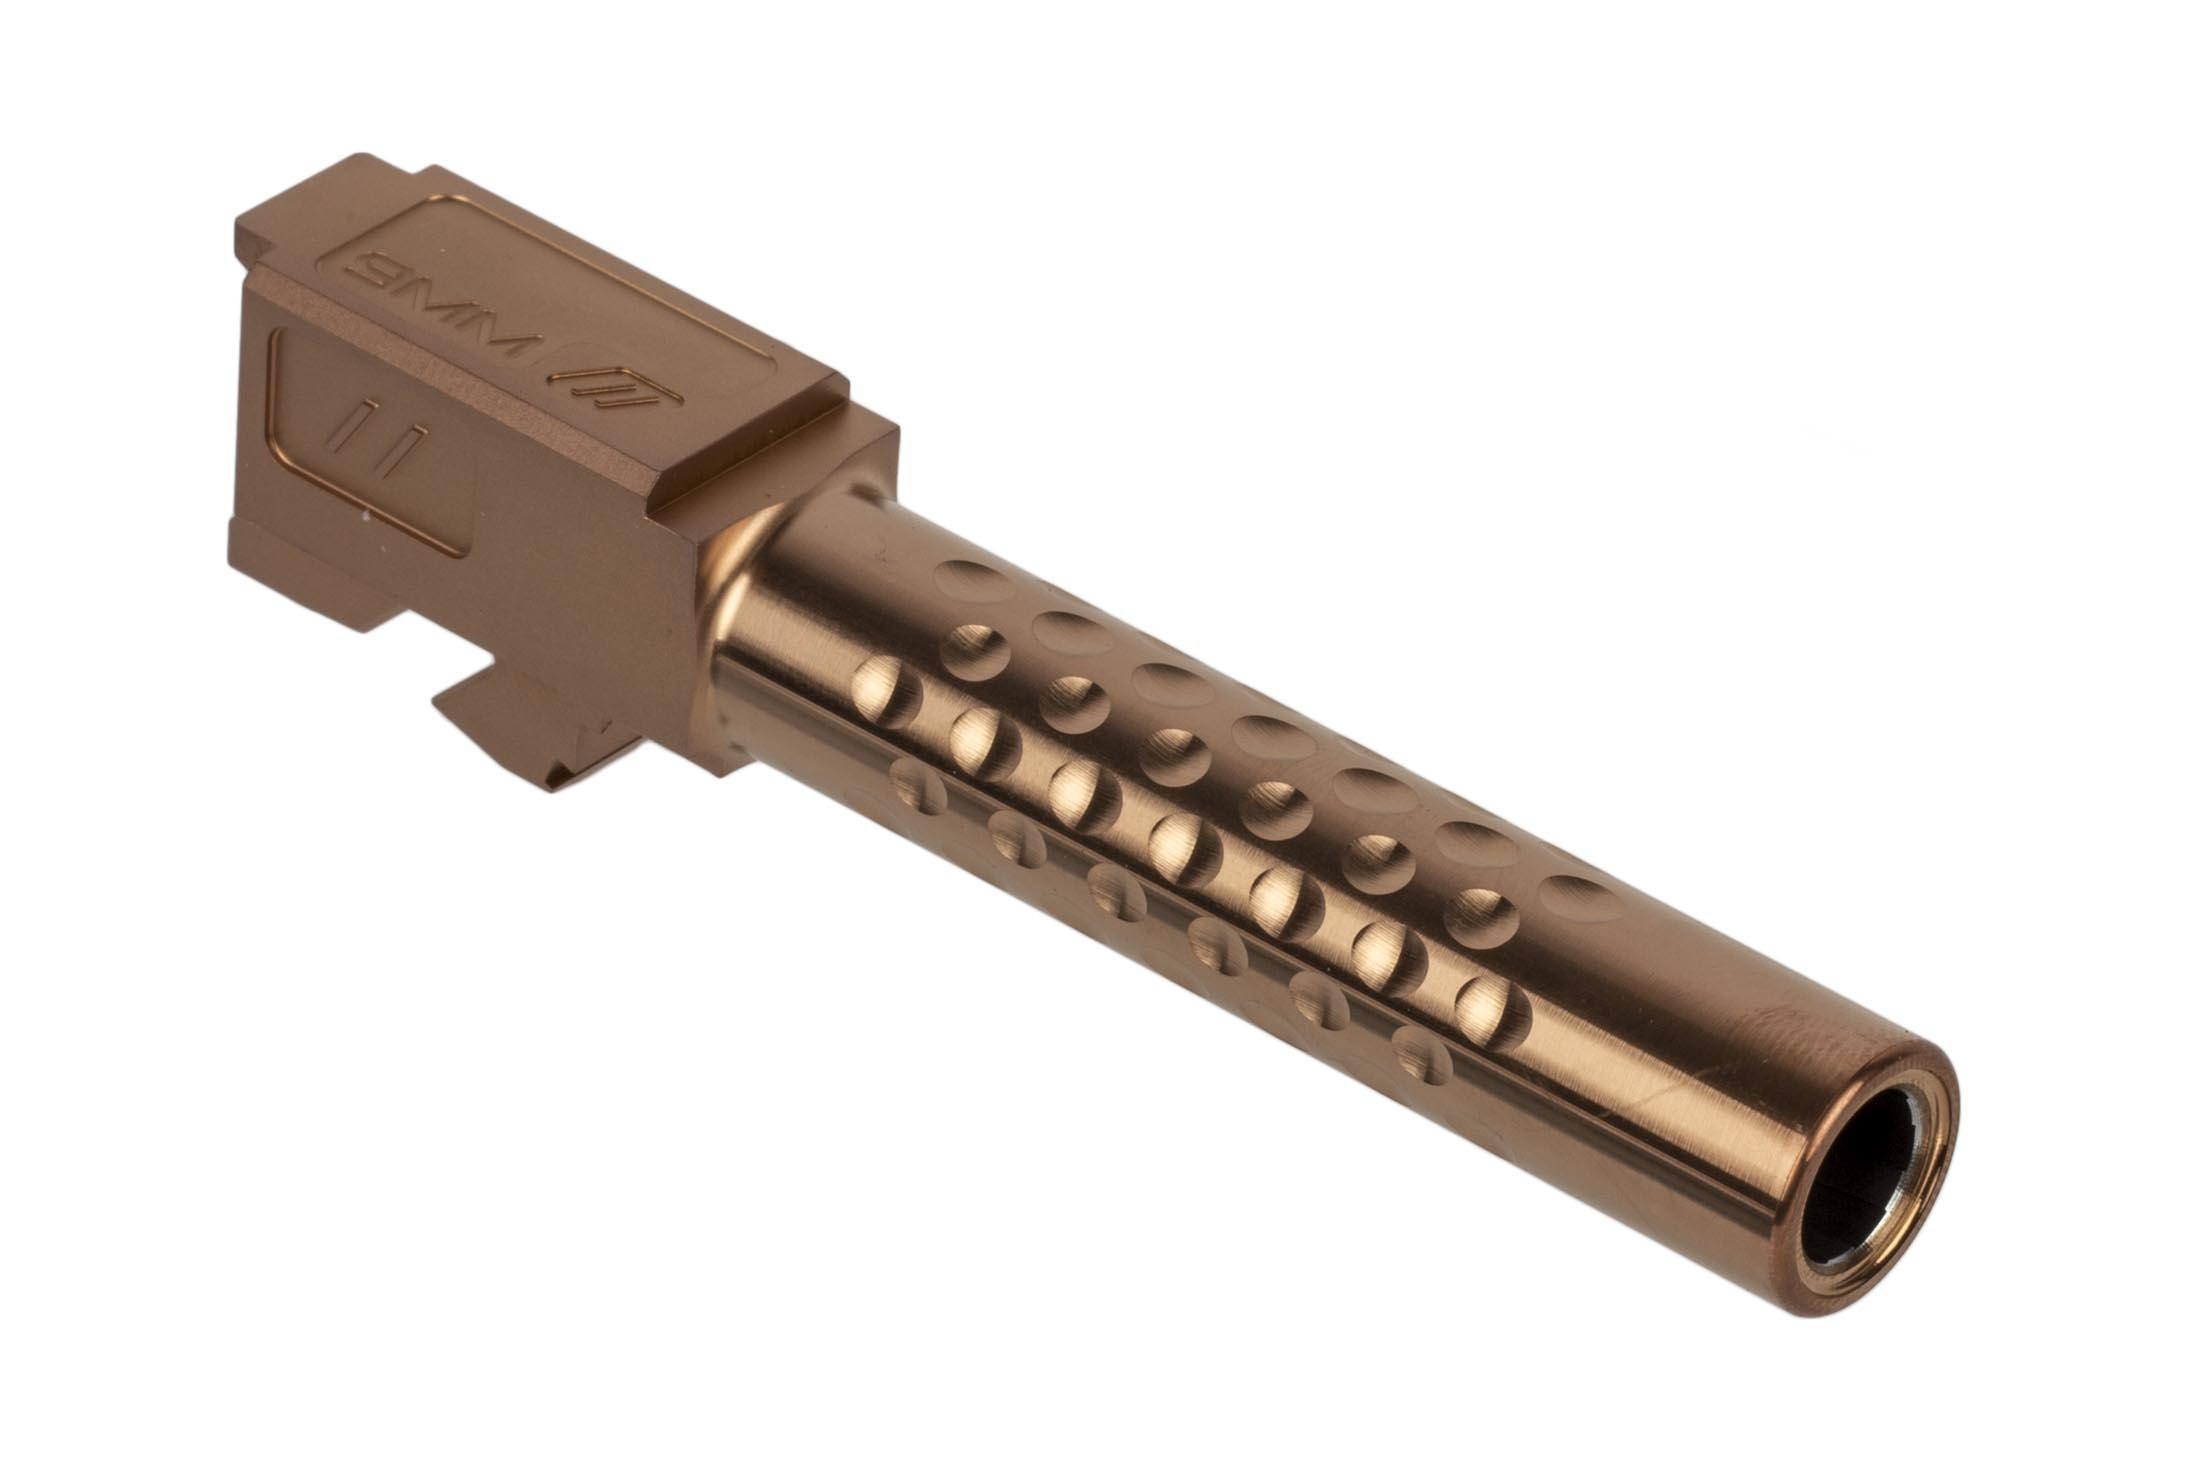 The Zev Technologies Glock 19 dimpled barrel is machined from 416R stainless steel with a burnt bronze finish